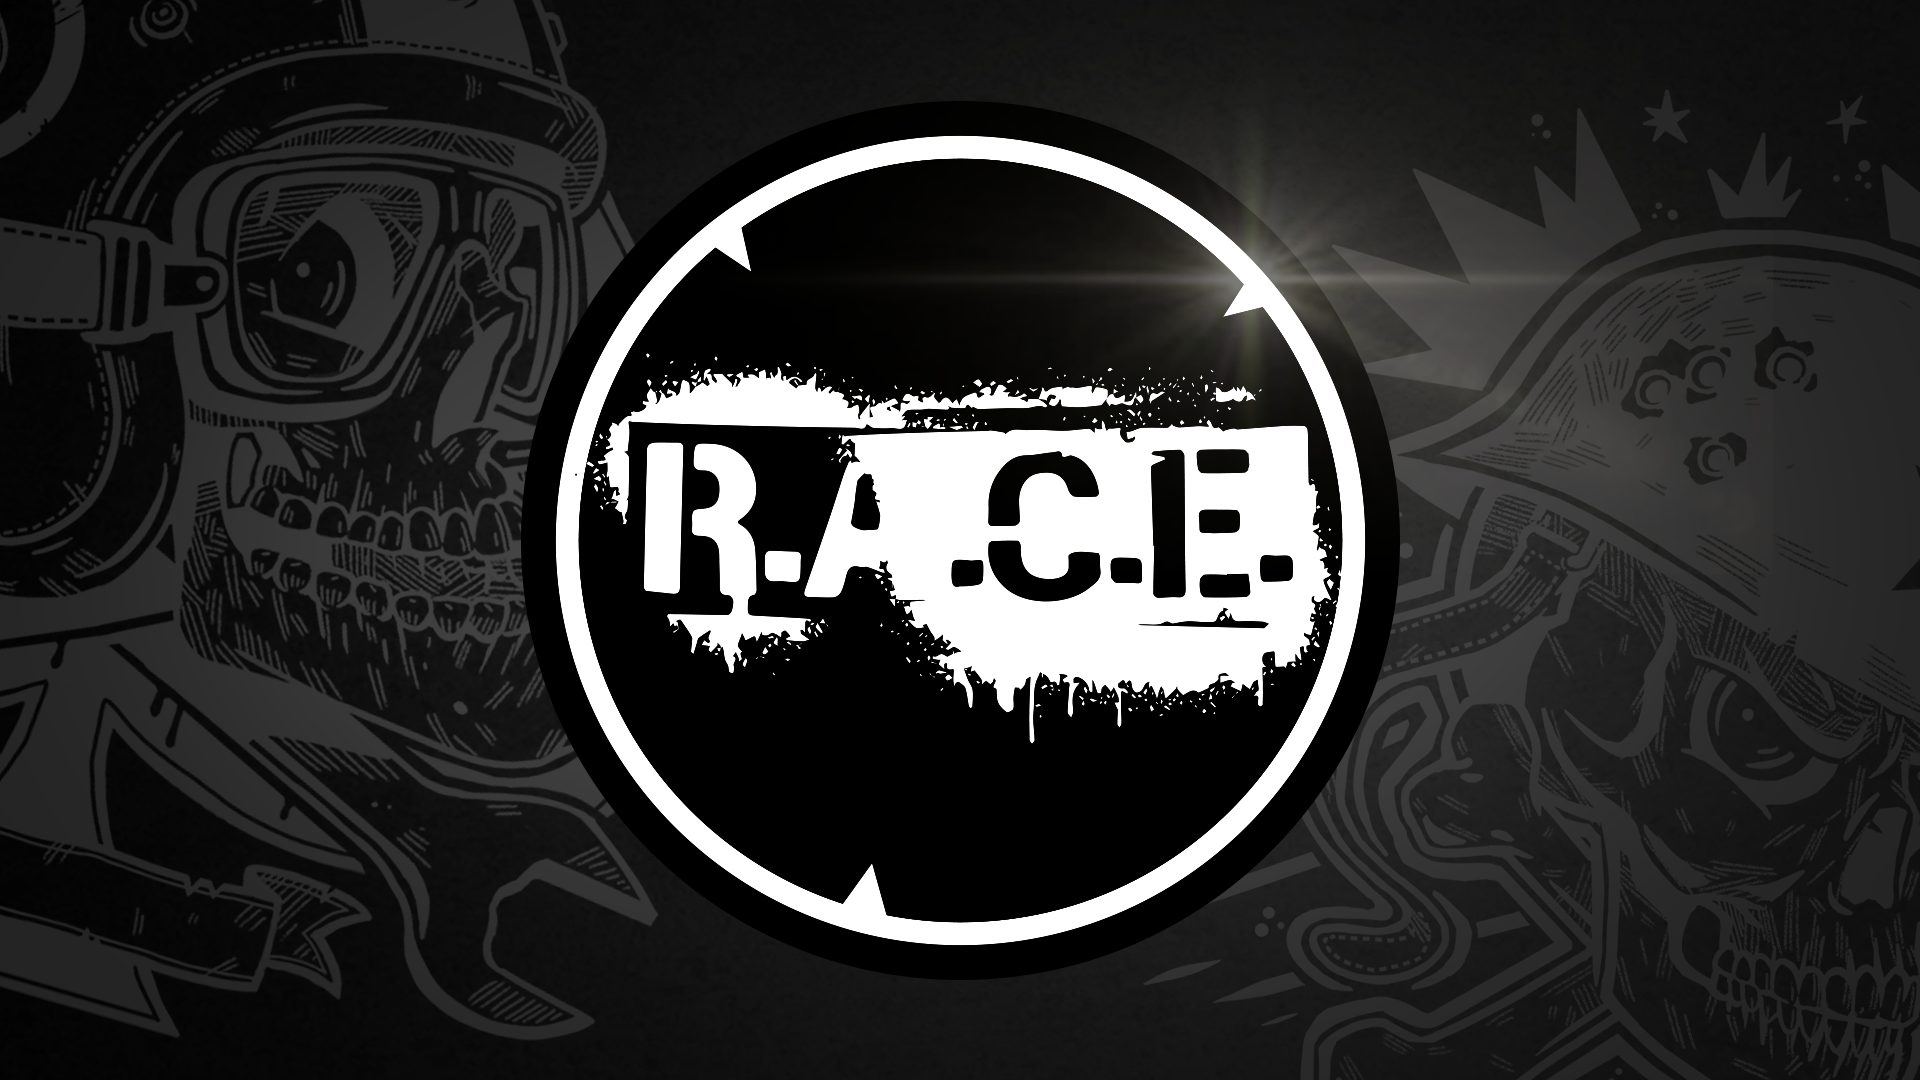 Icon for Honorary member of R.A.C.E.